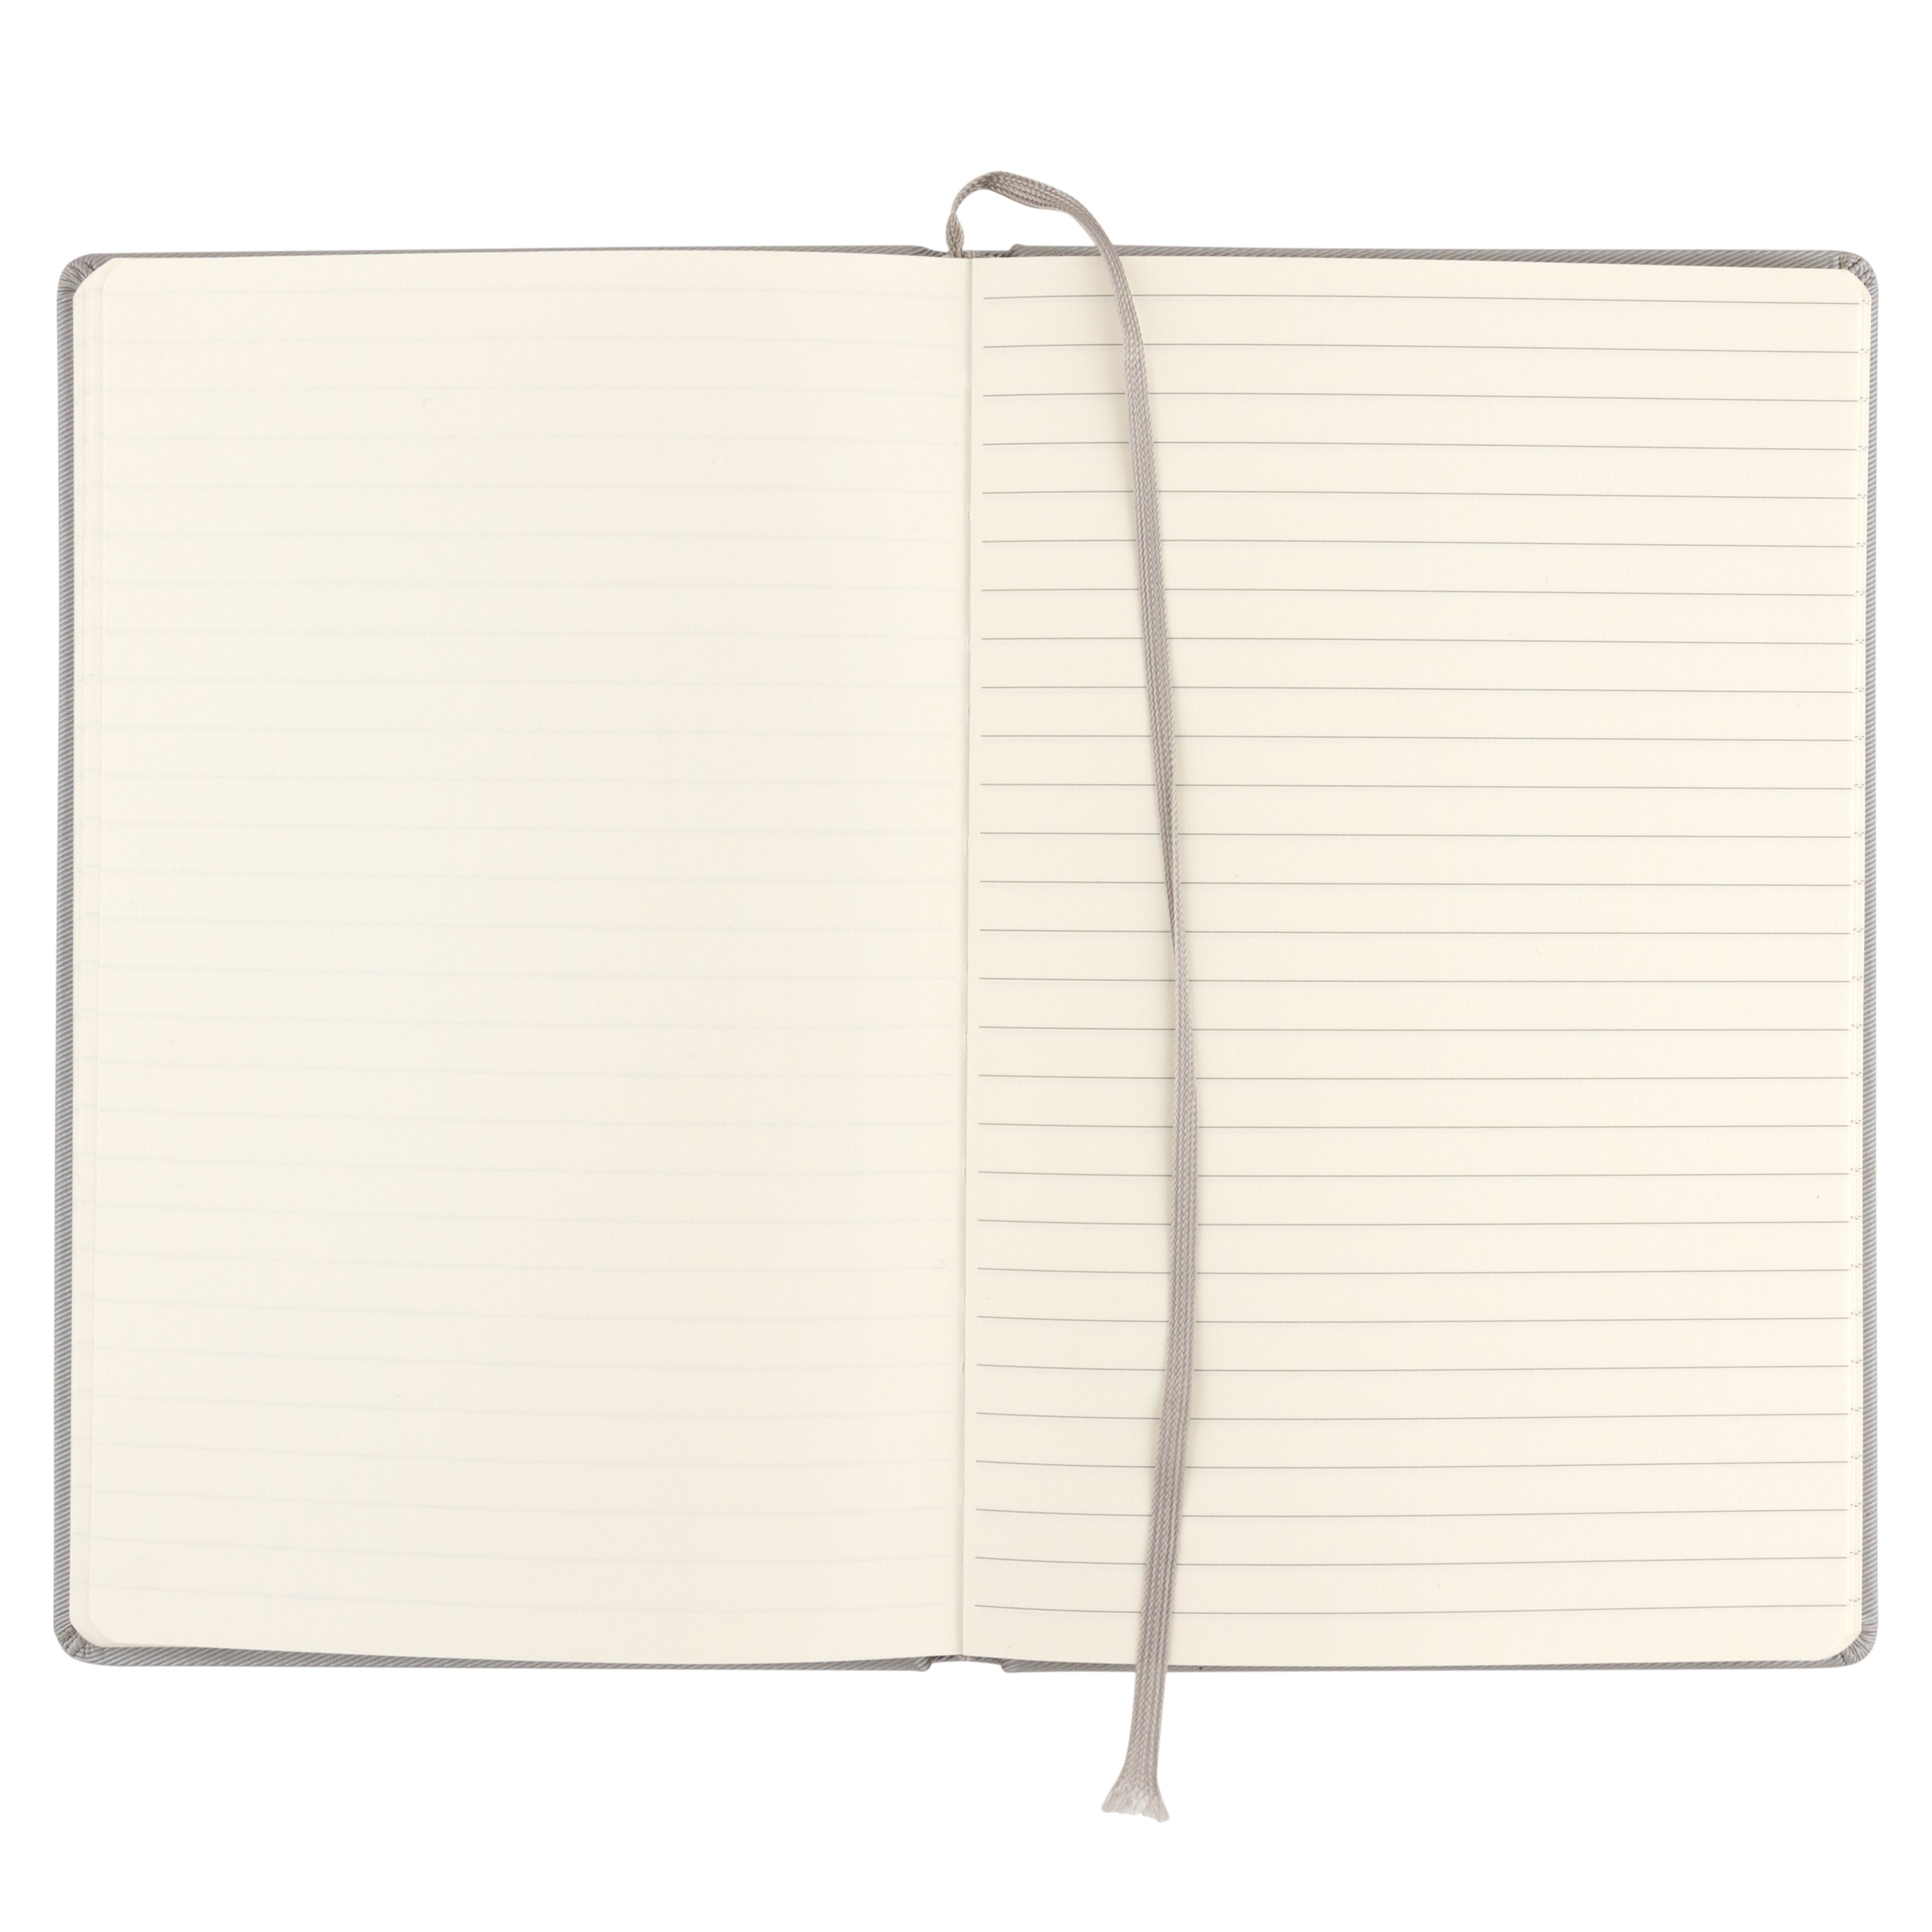 Charm Birthday Gifts for Women or Cool Teenage Girls Notebook Gift with Nice Journal 4 Composition for Friendship, Colleagues or Boss with A5 Hardcover, Rose Gold, 27# Paper, Gift Boxes (Light Silver)